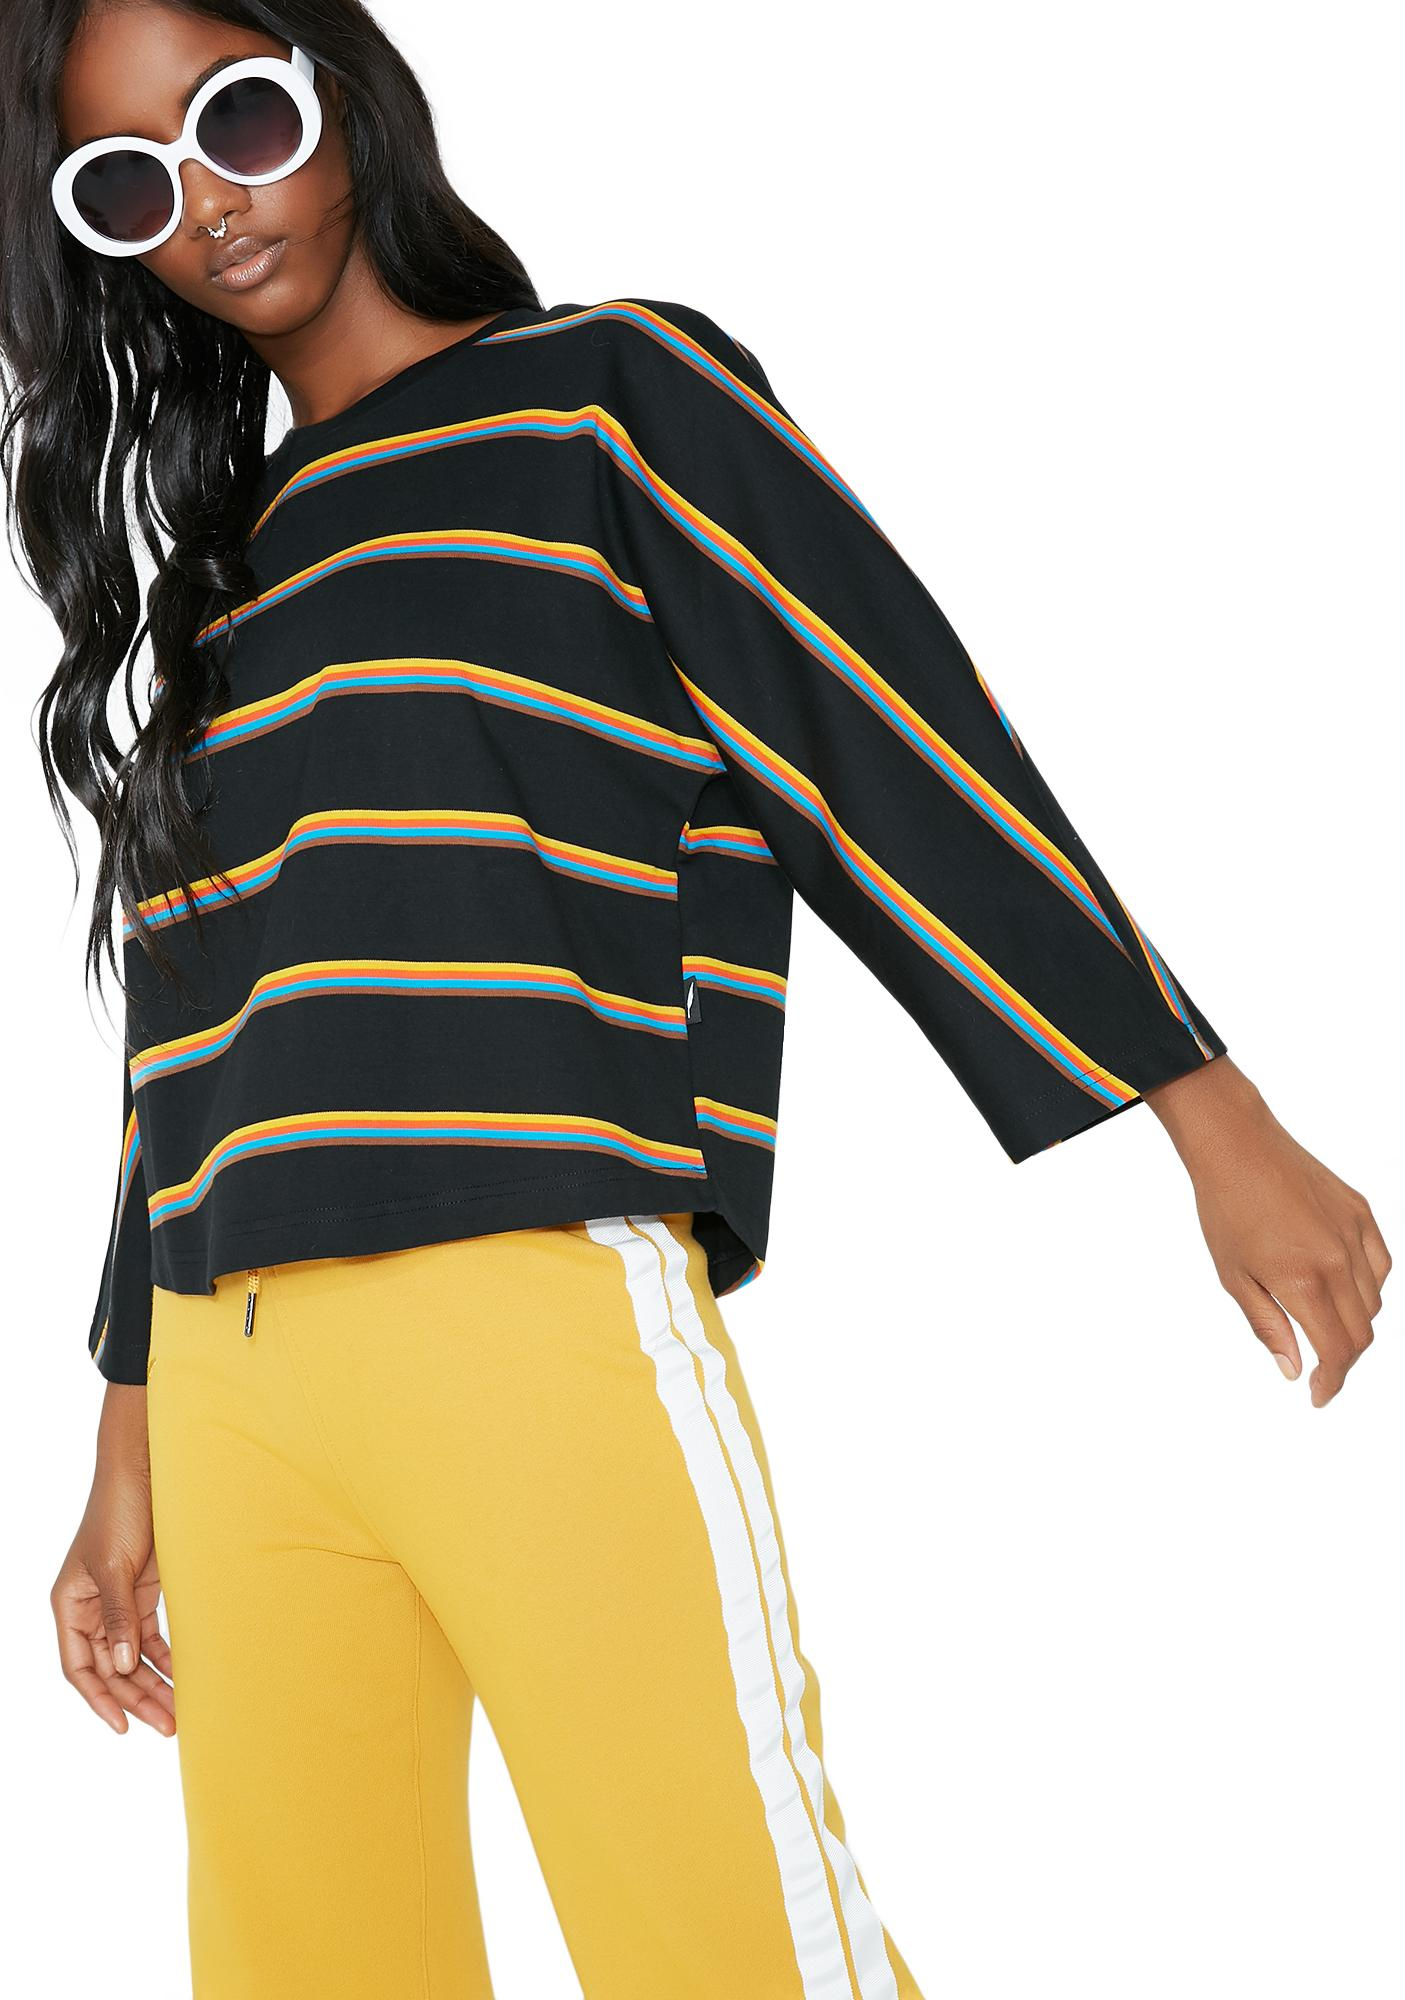 Publish Glenda Box Fit Stripe Top